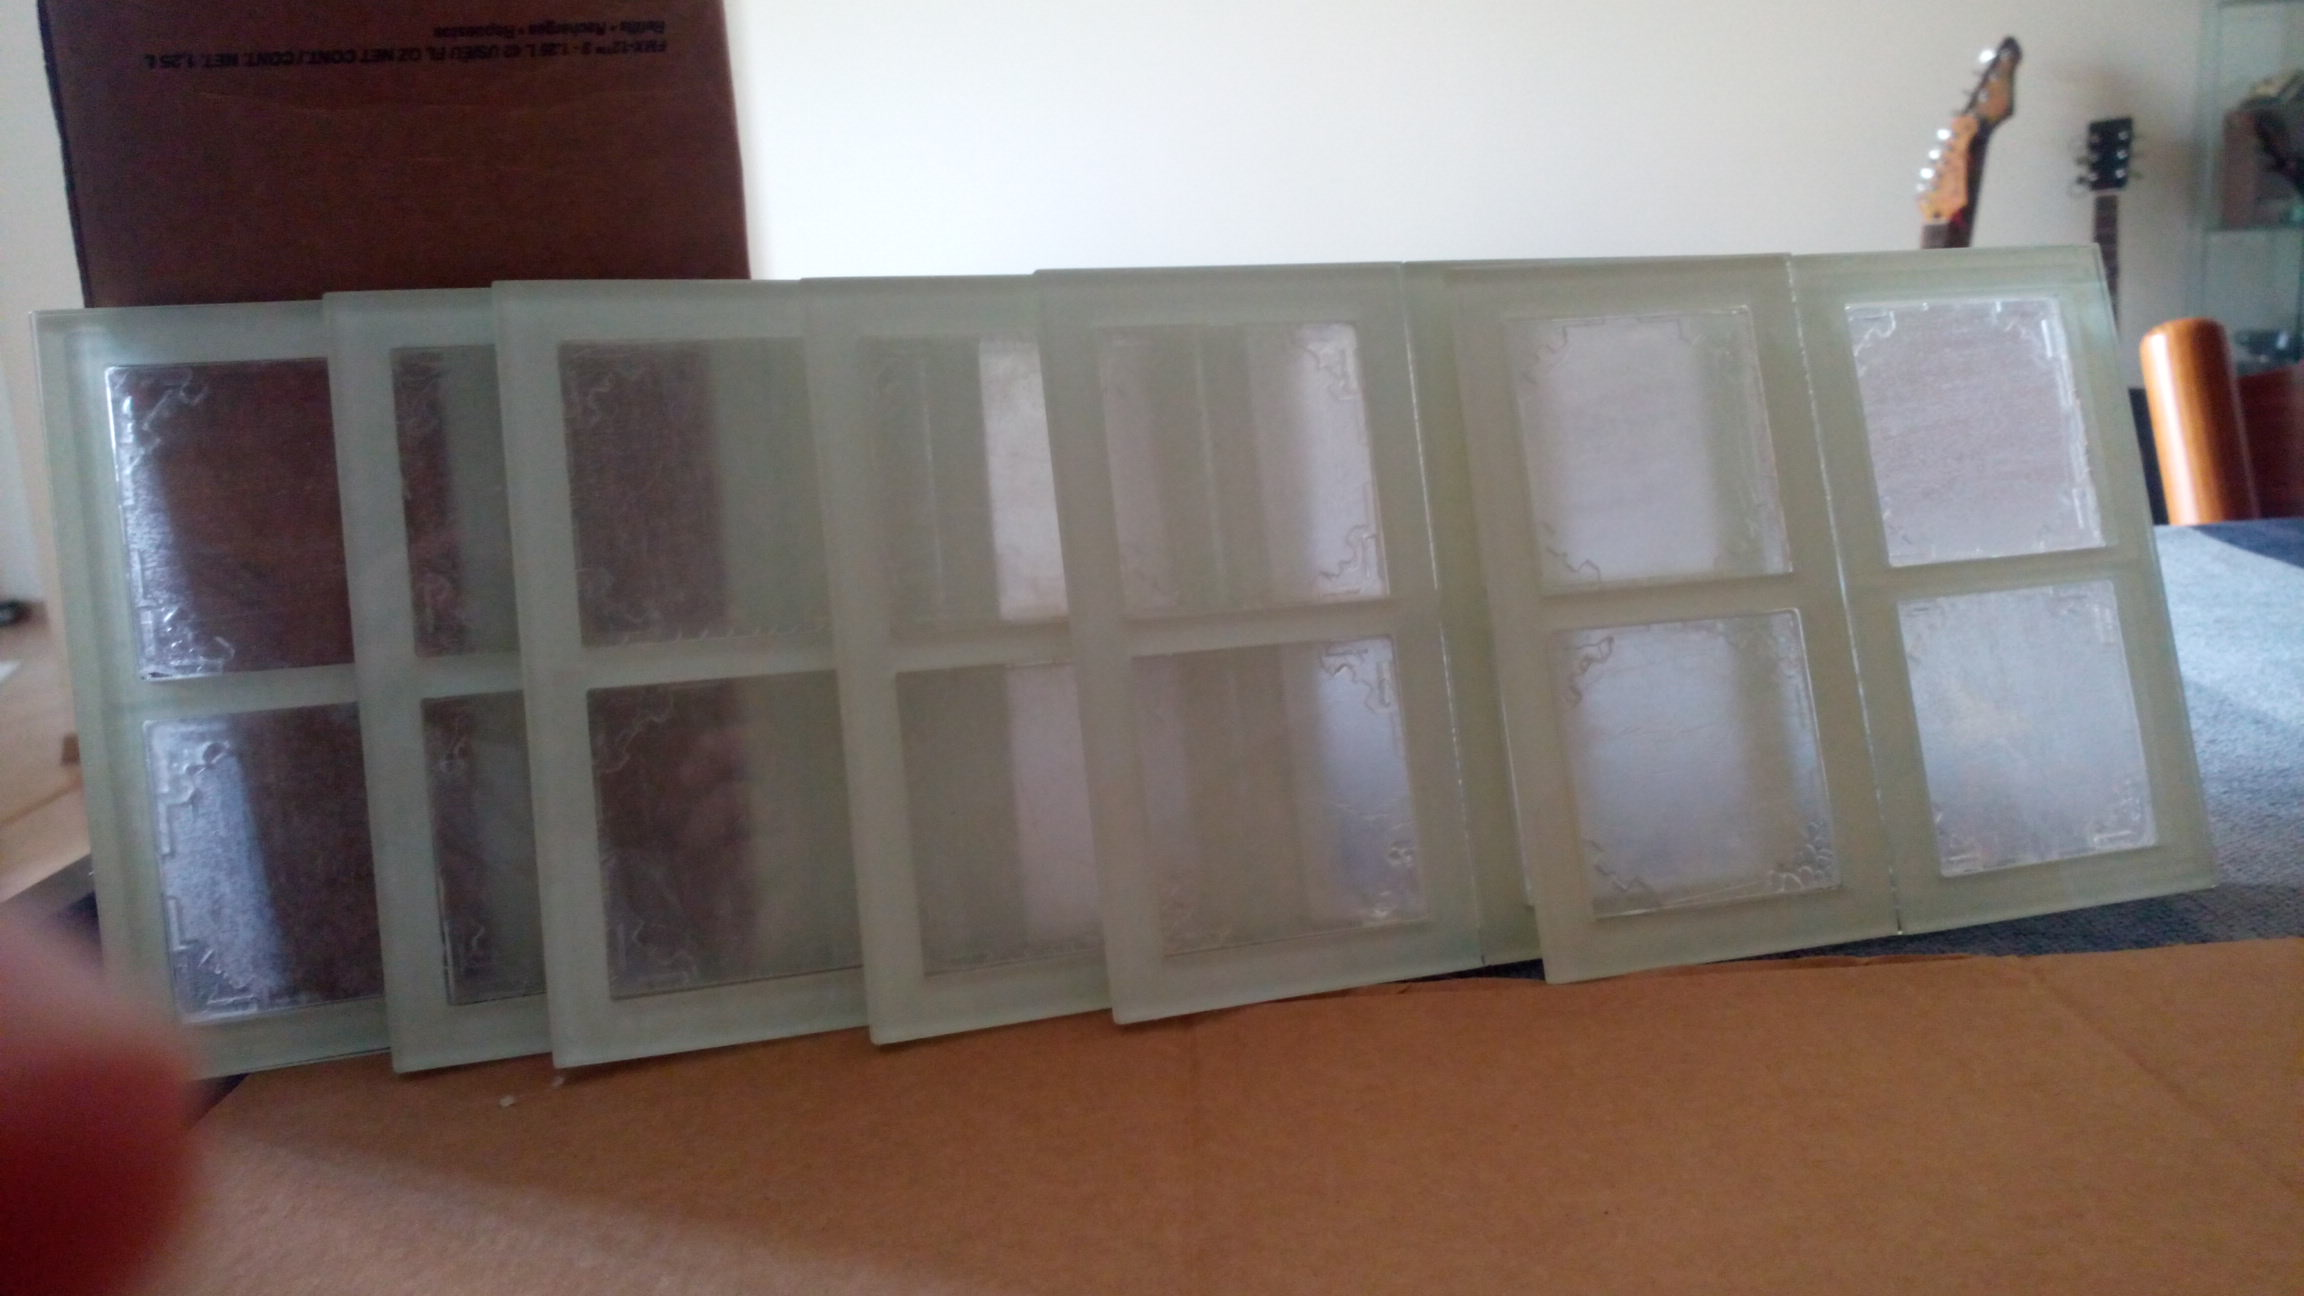 Picture of Gluing the Acrylic White Squares on the Frames